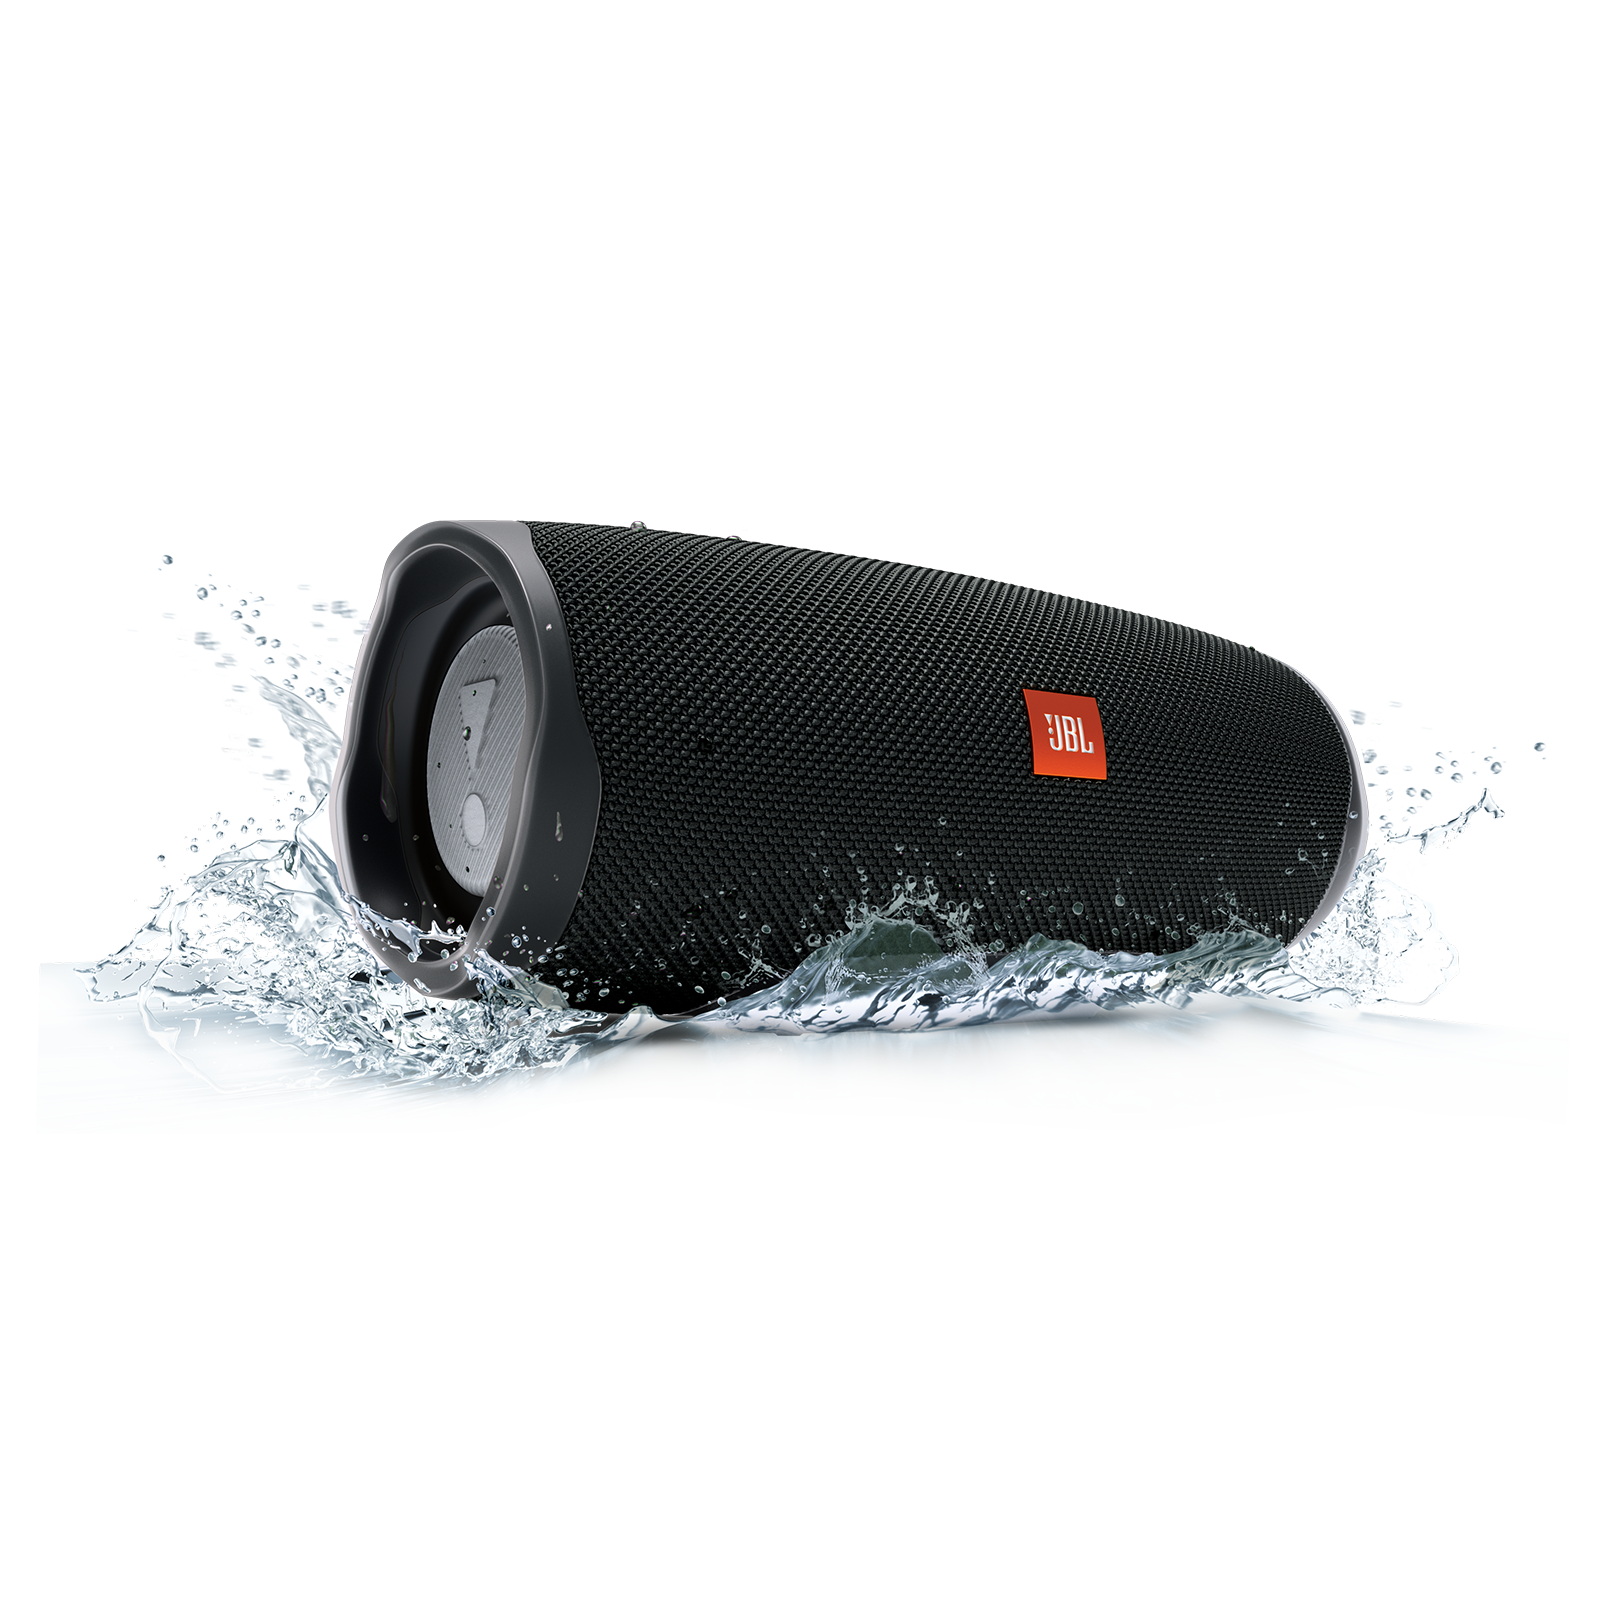 4 Waterproof Touchless Wireless Portable Bluetooth Speaker Black 100 JBL Connect